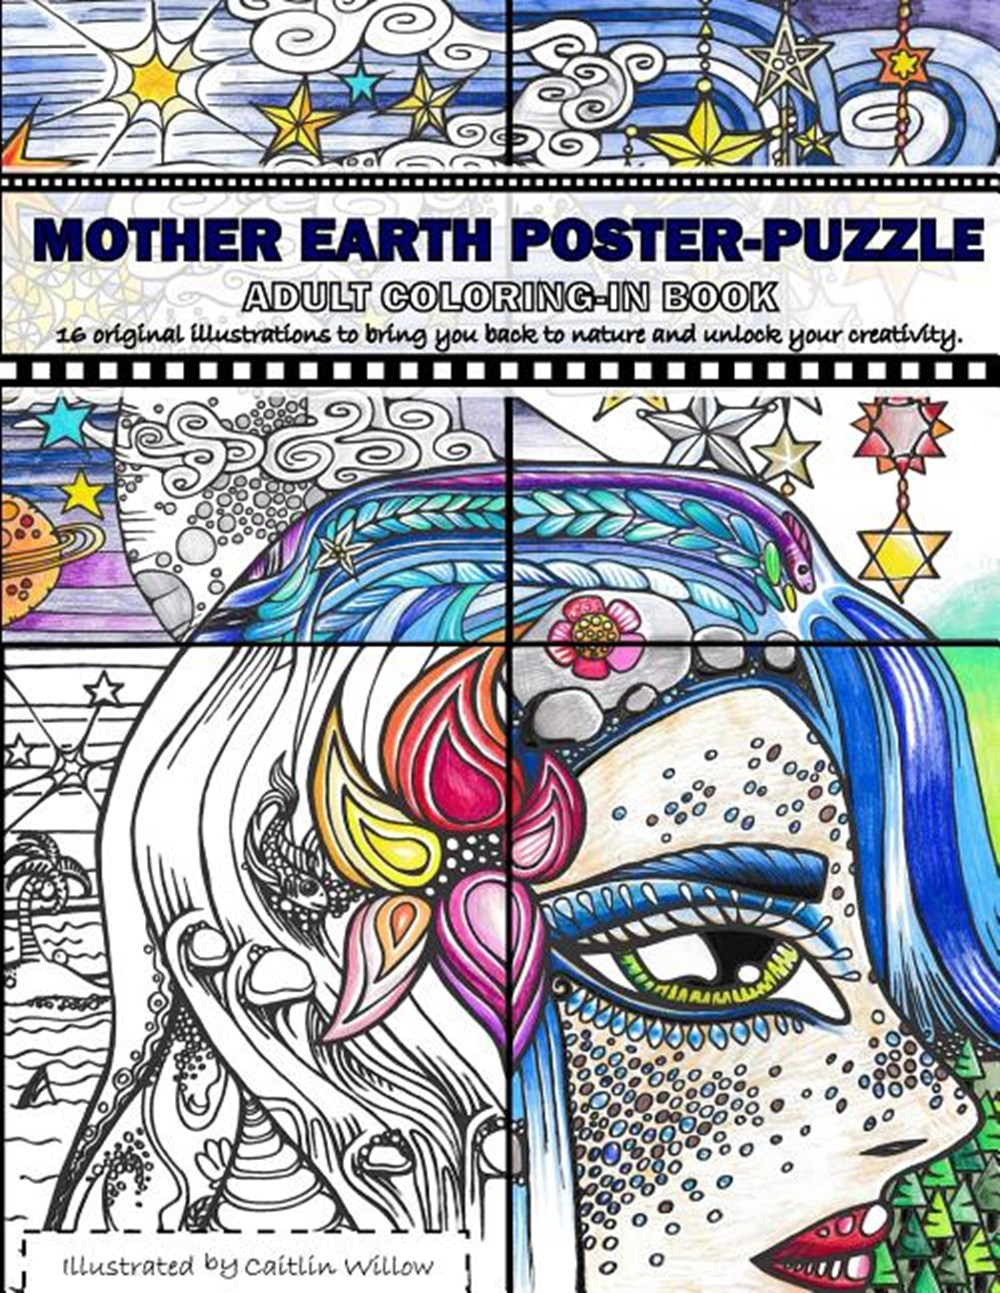 Mother Earth Poster-Puzzle Adult Coloring-In Book 16 Illustrations to Bring You Back to Nature and U